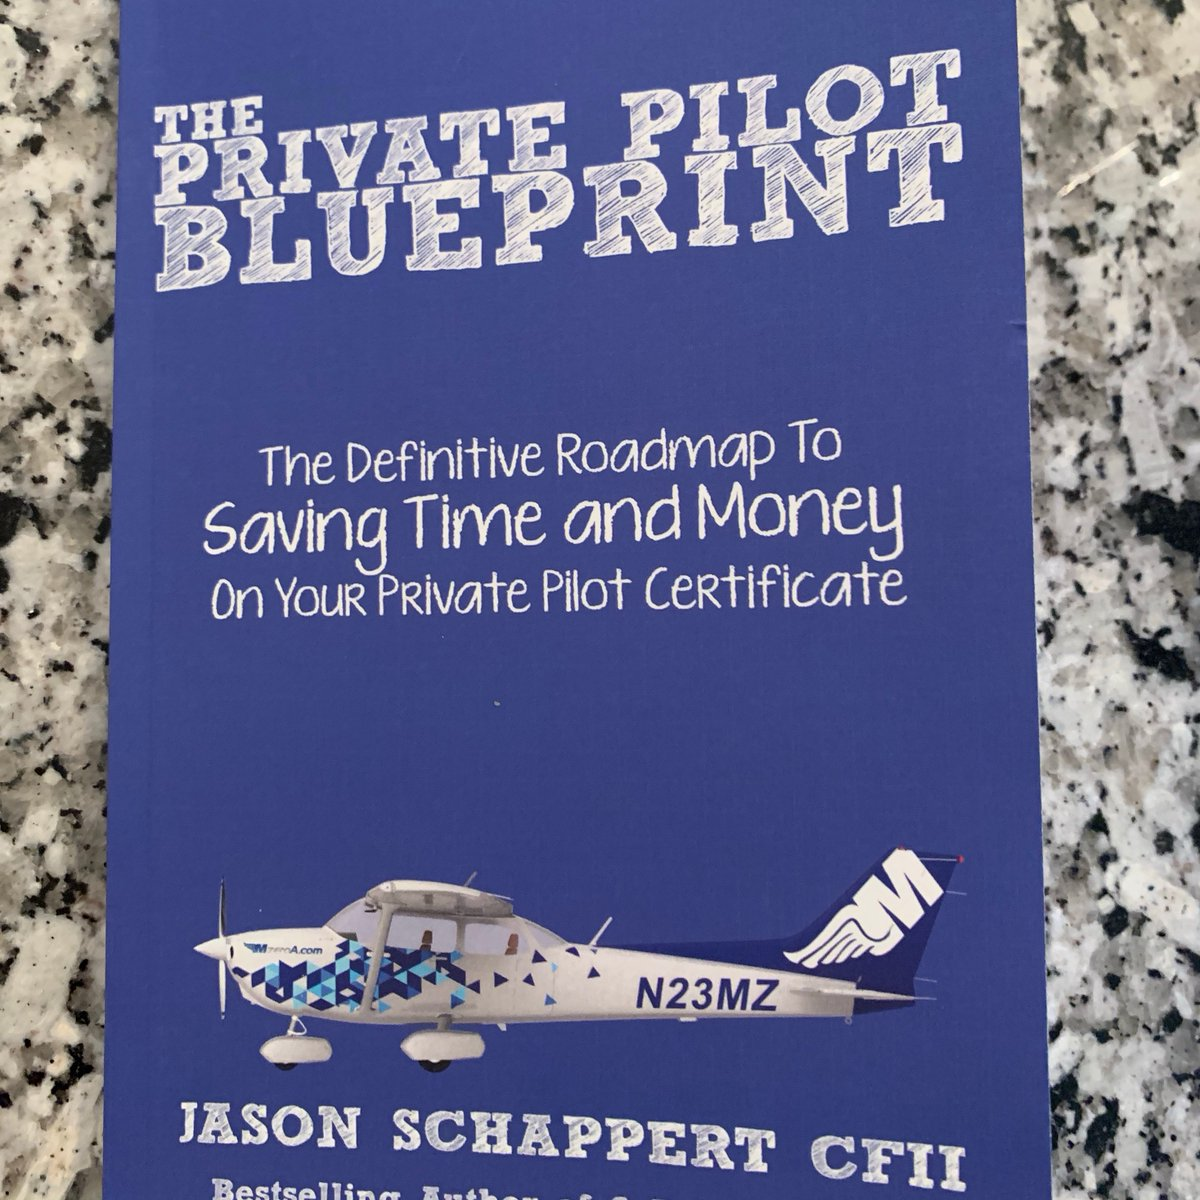 EJ0pr OWsAE1npt - This is a great read for someone who is looking to get their private license. Well done. mzeroa pilot pilotlife piloteyes aviationlovers avgeek avdaily aviation pilotview pilotfam aircraft airplane aviationdaily instaplane aviationpic m0a aviator